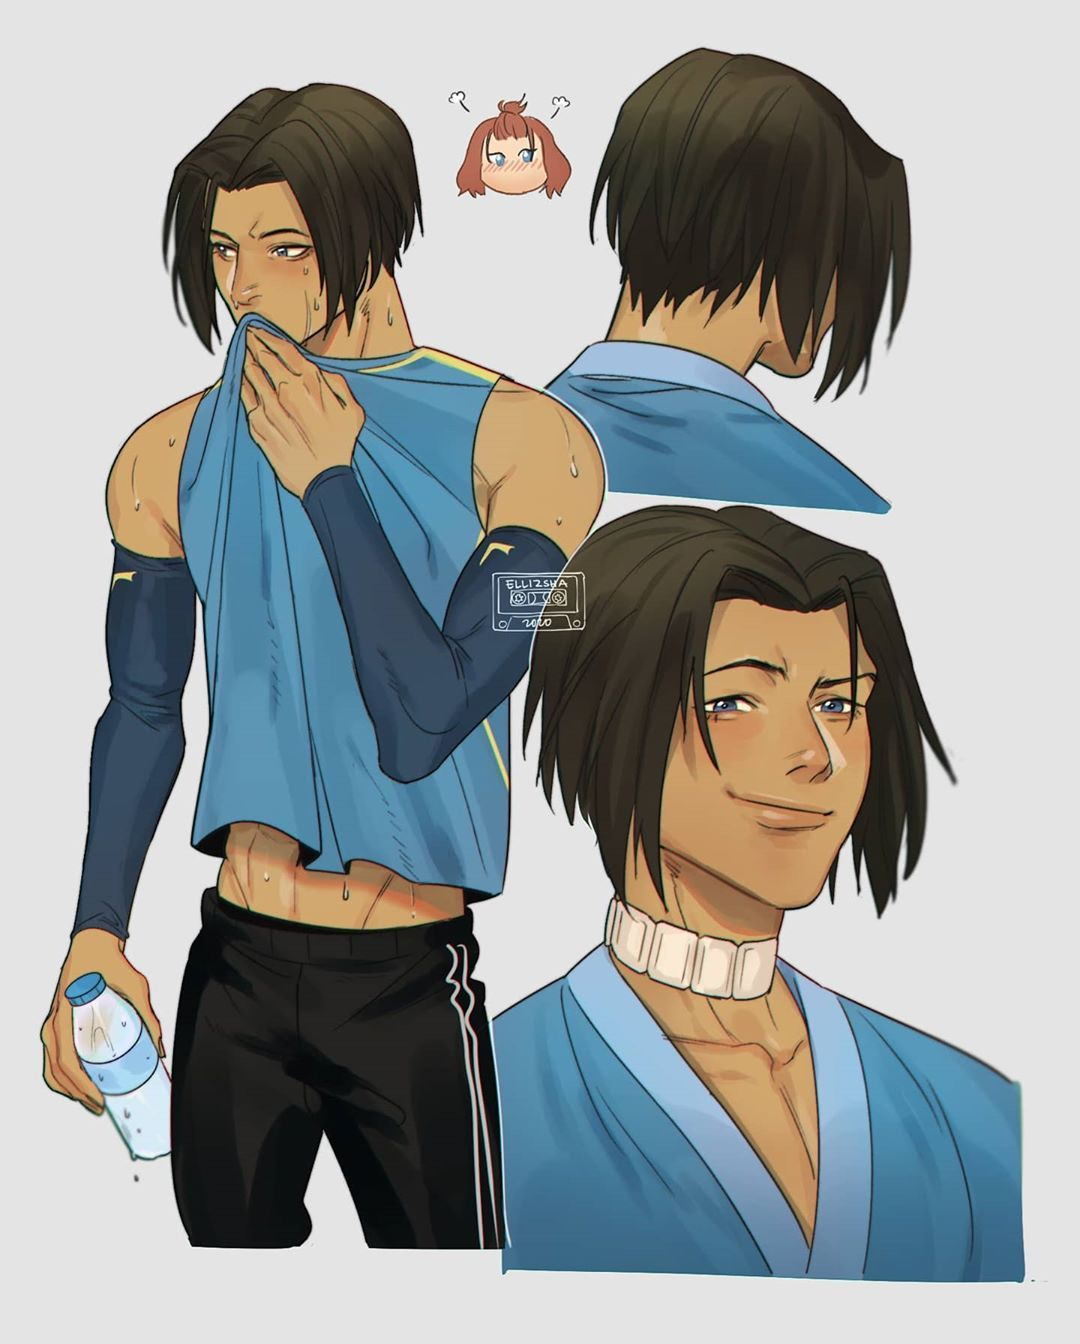 Fine Make Me Your Villain Sokka With His Hair Down Drinkcactusjuice I In 2020 Avatar Funny Avatar Characters Avatar The Last Airbender